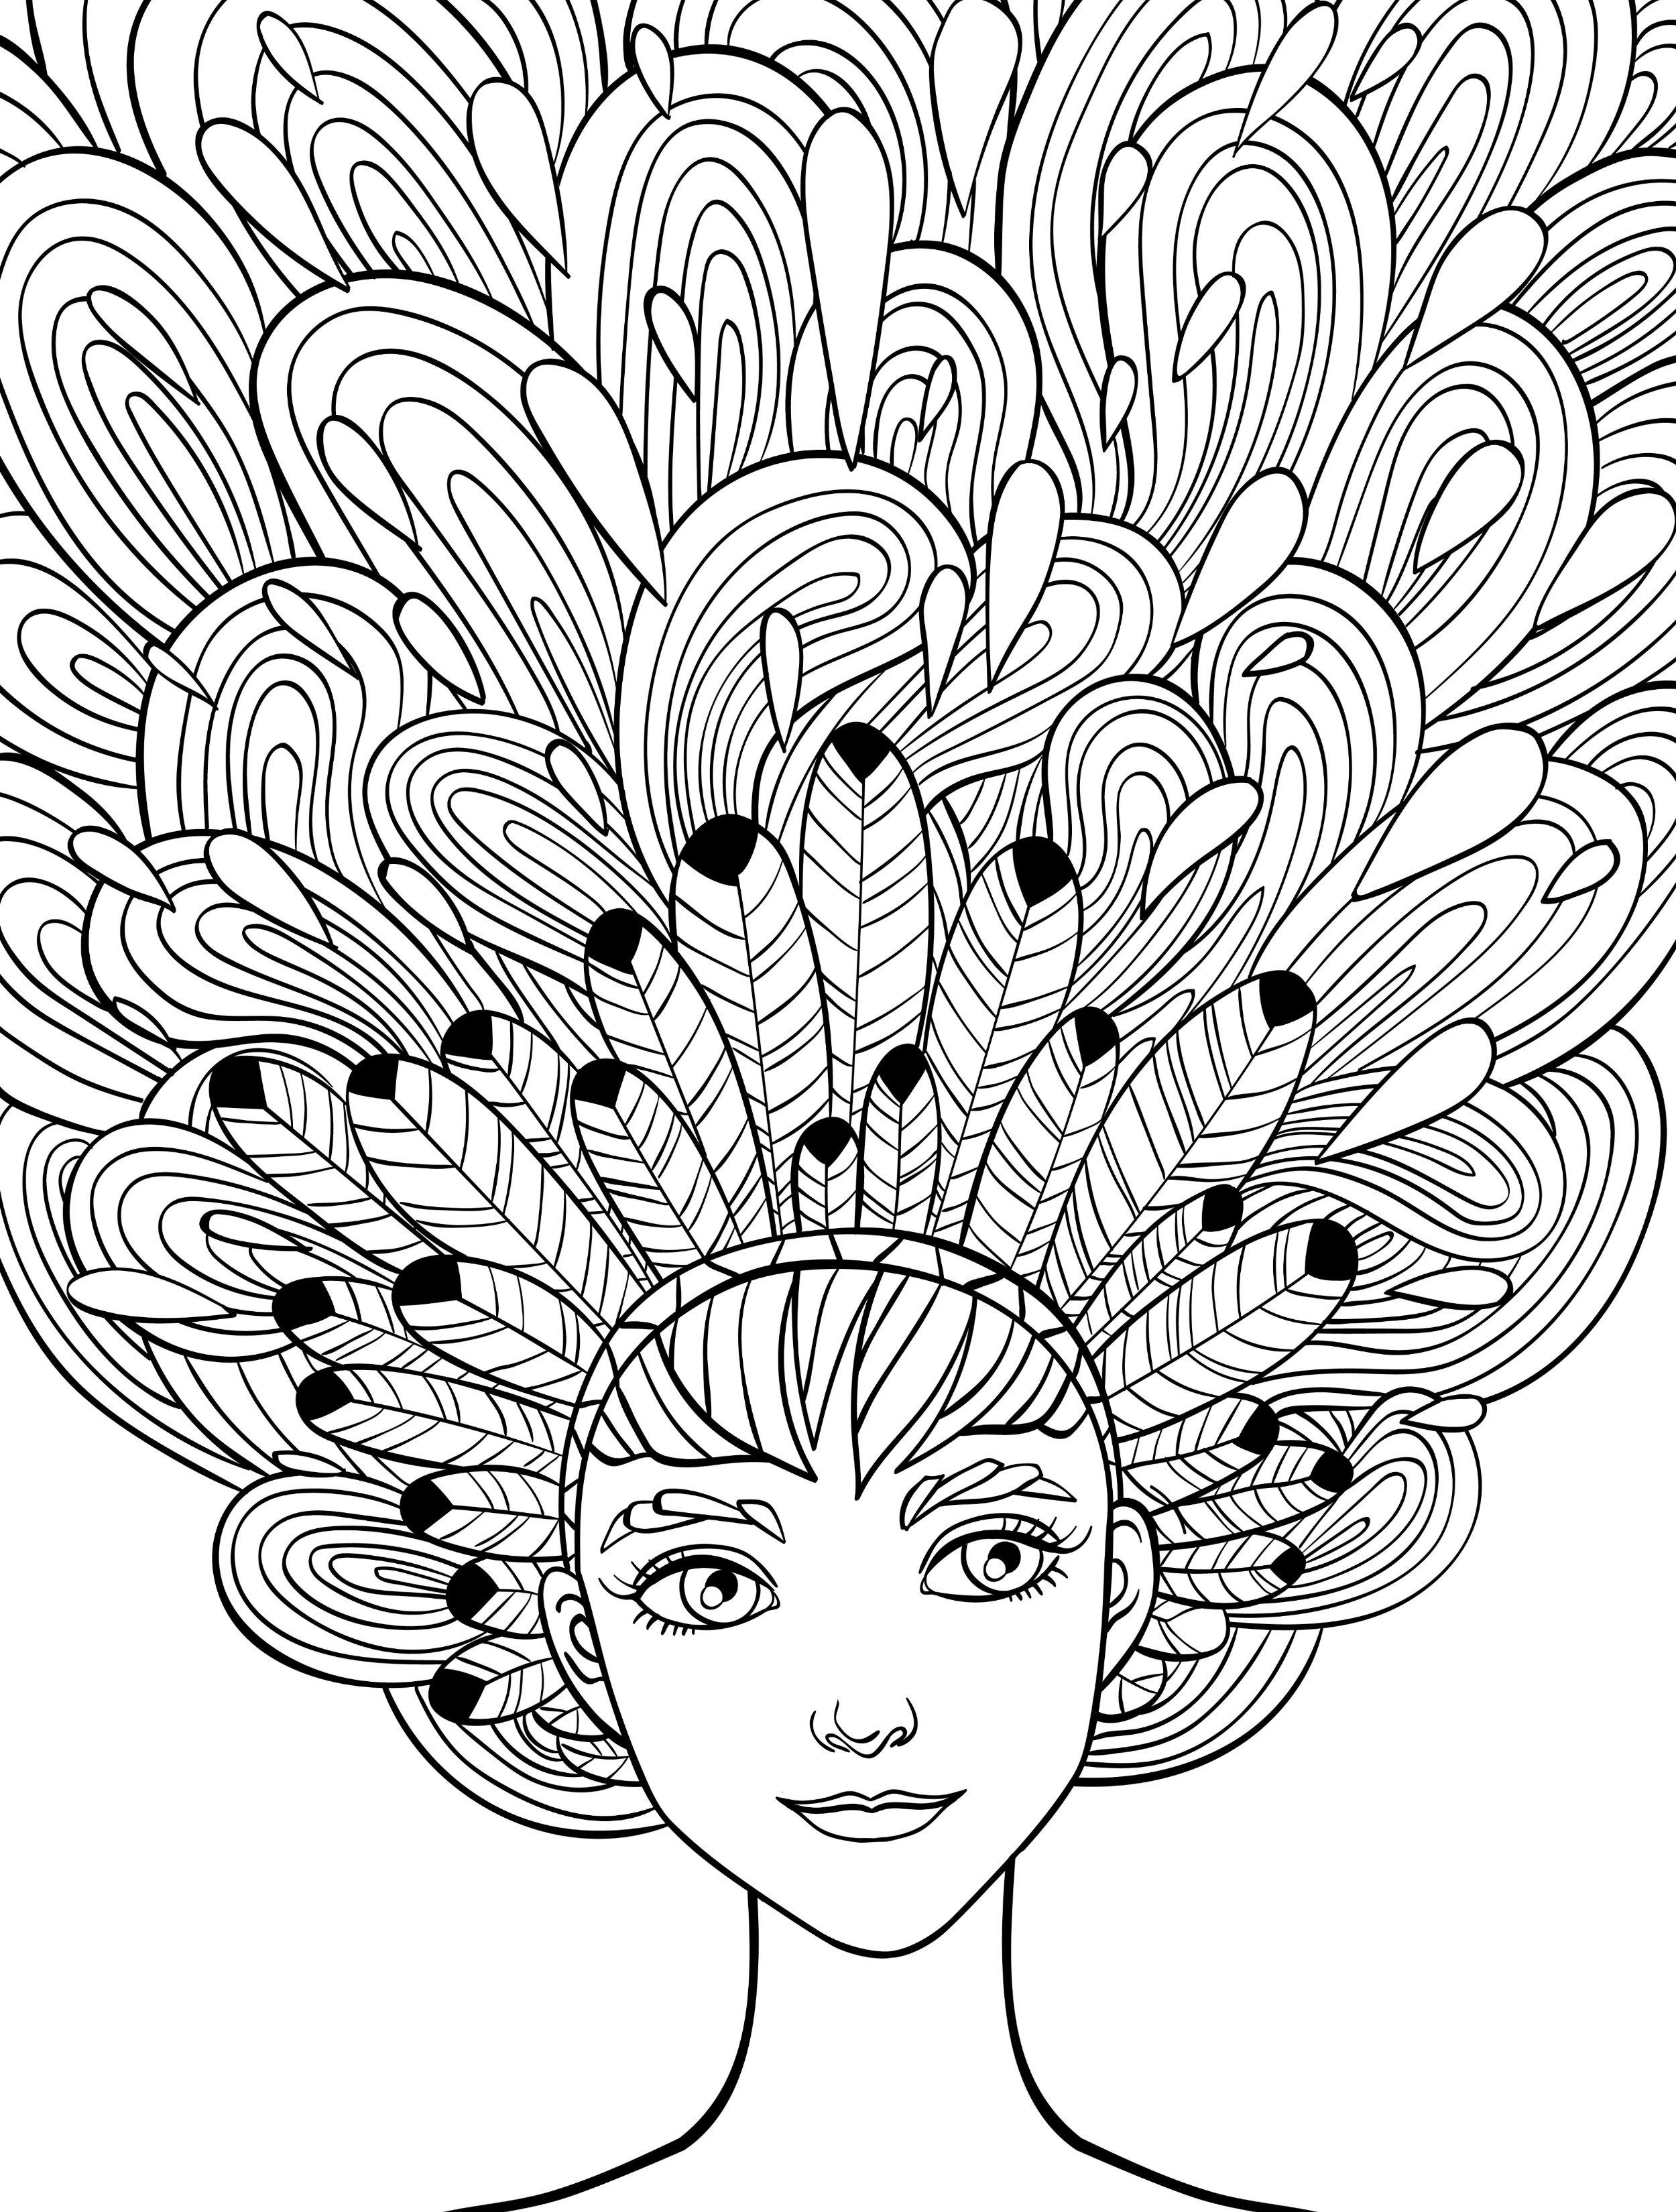 10 Crazy Hair Adult Coloring Pages Coloring Pages Adult